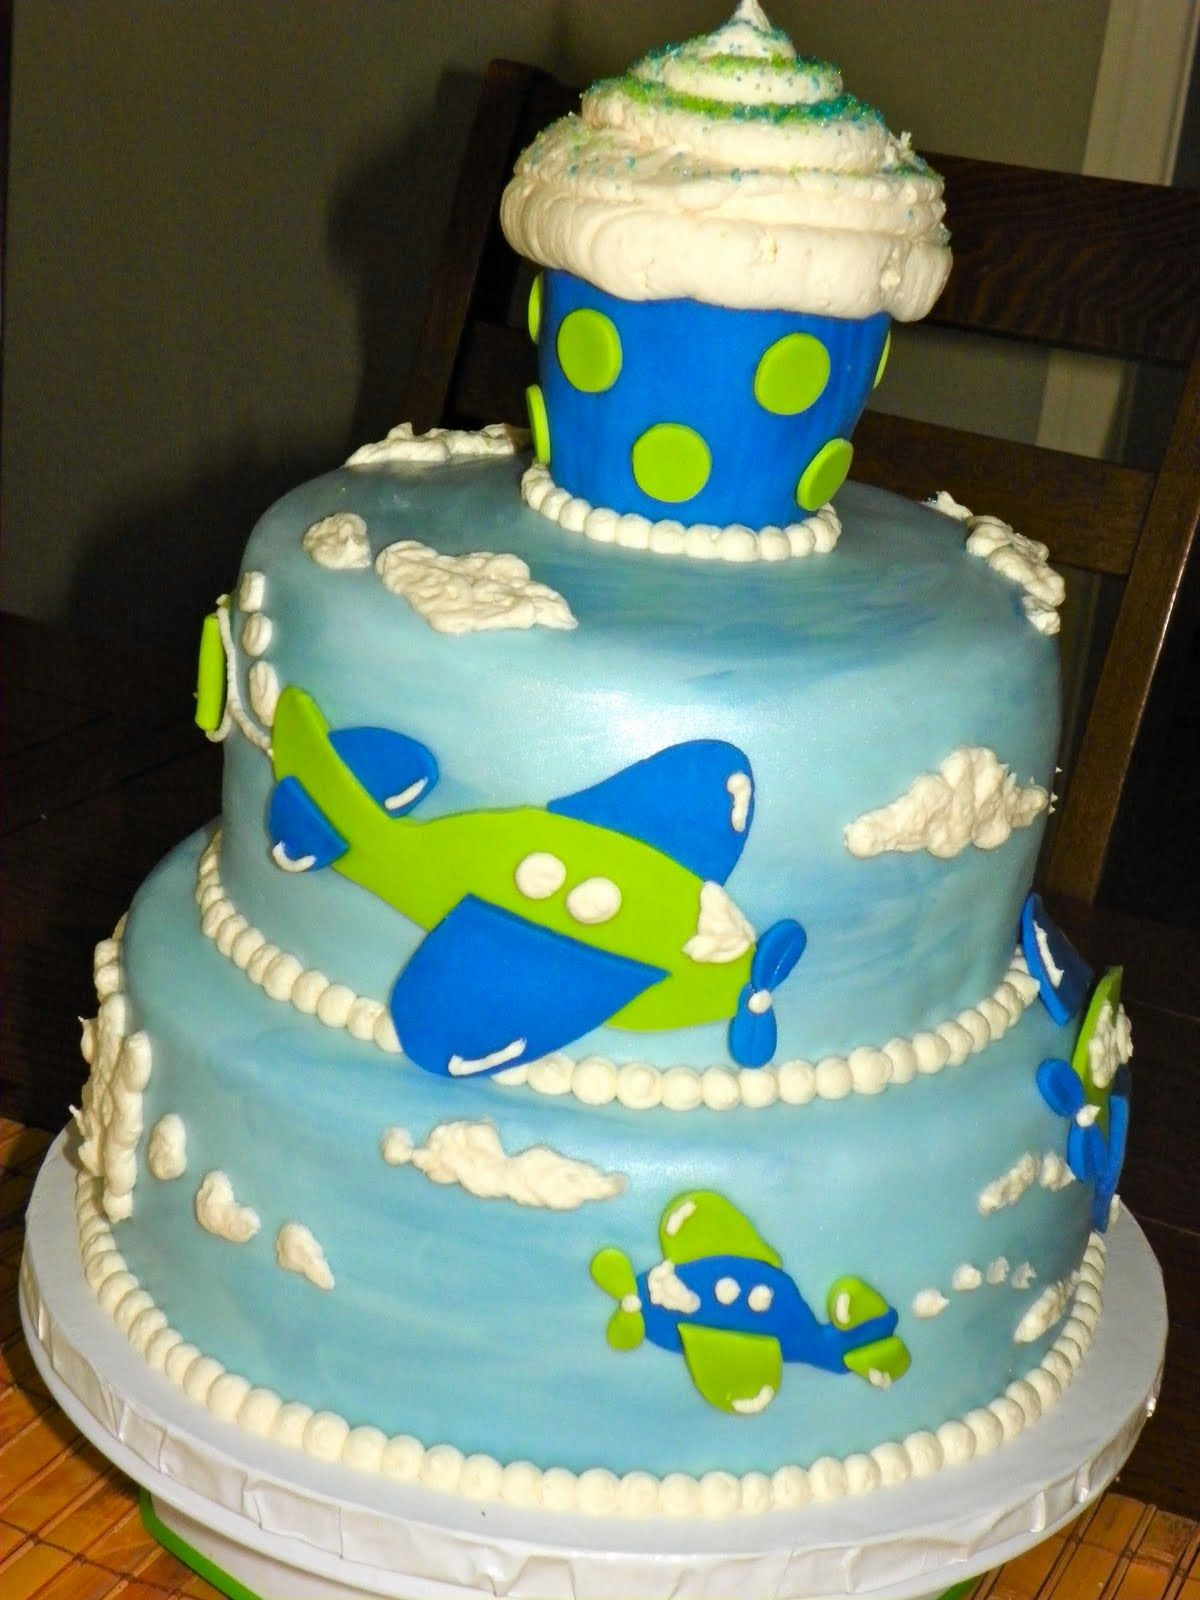 Birthday Cakes At Publix Plumeria Cake Studio Airplane